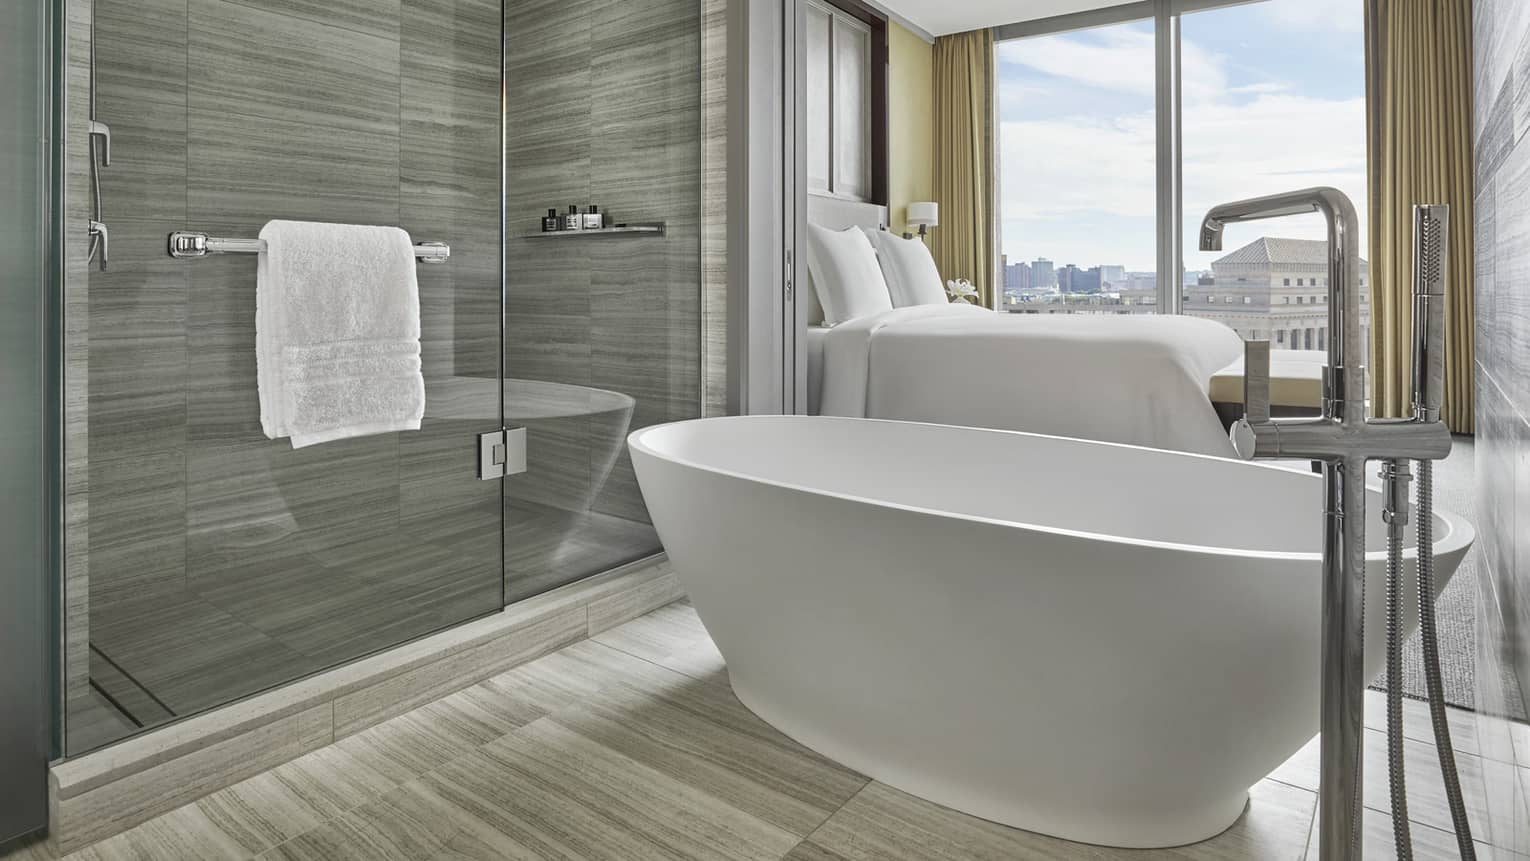 free standing tub and glass paneled walk in shower in a hotel bathroom